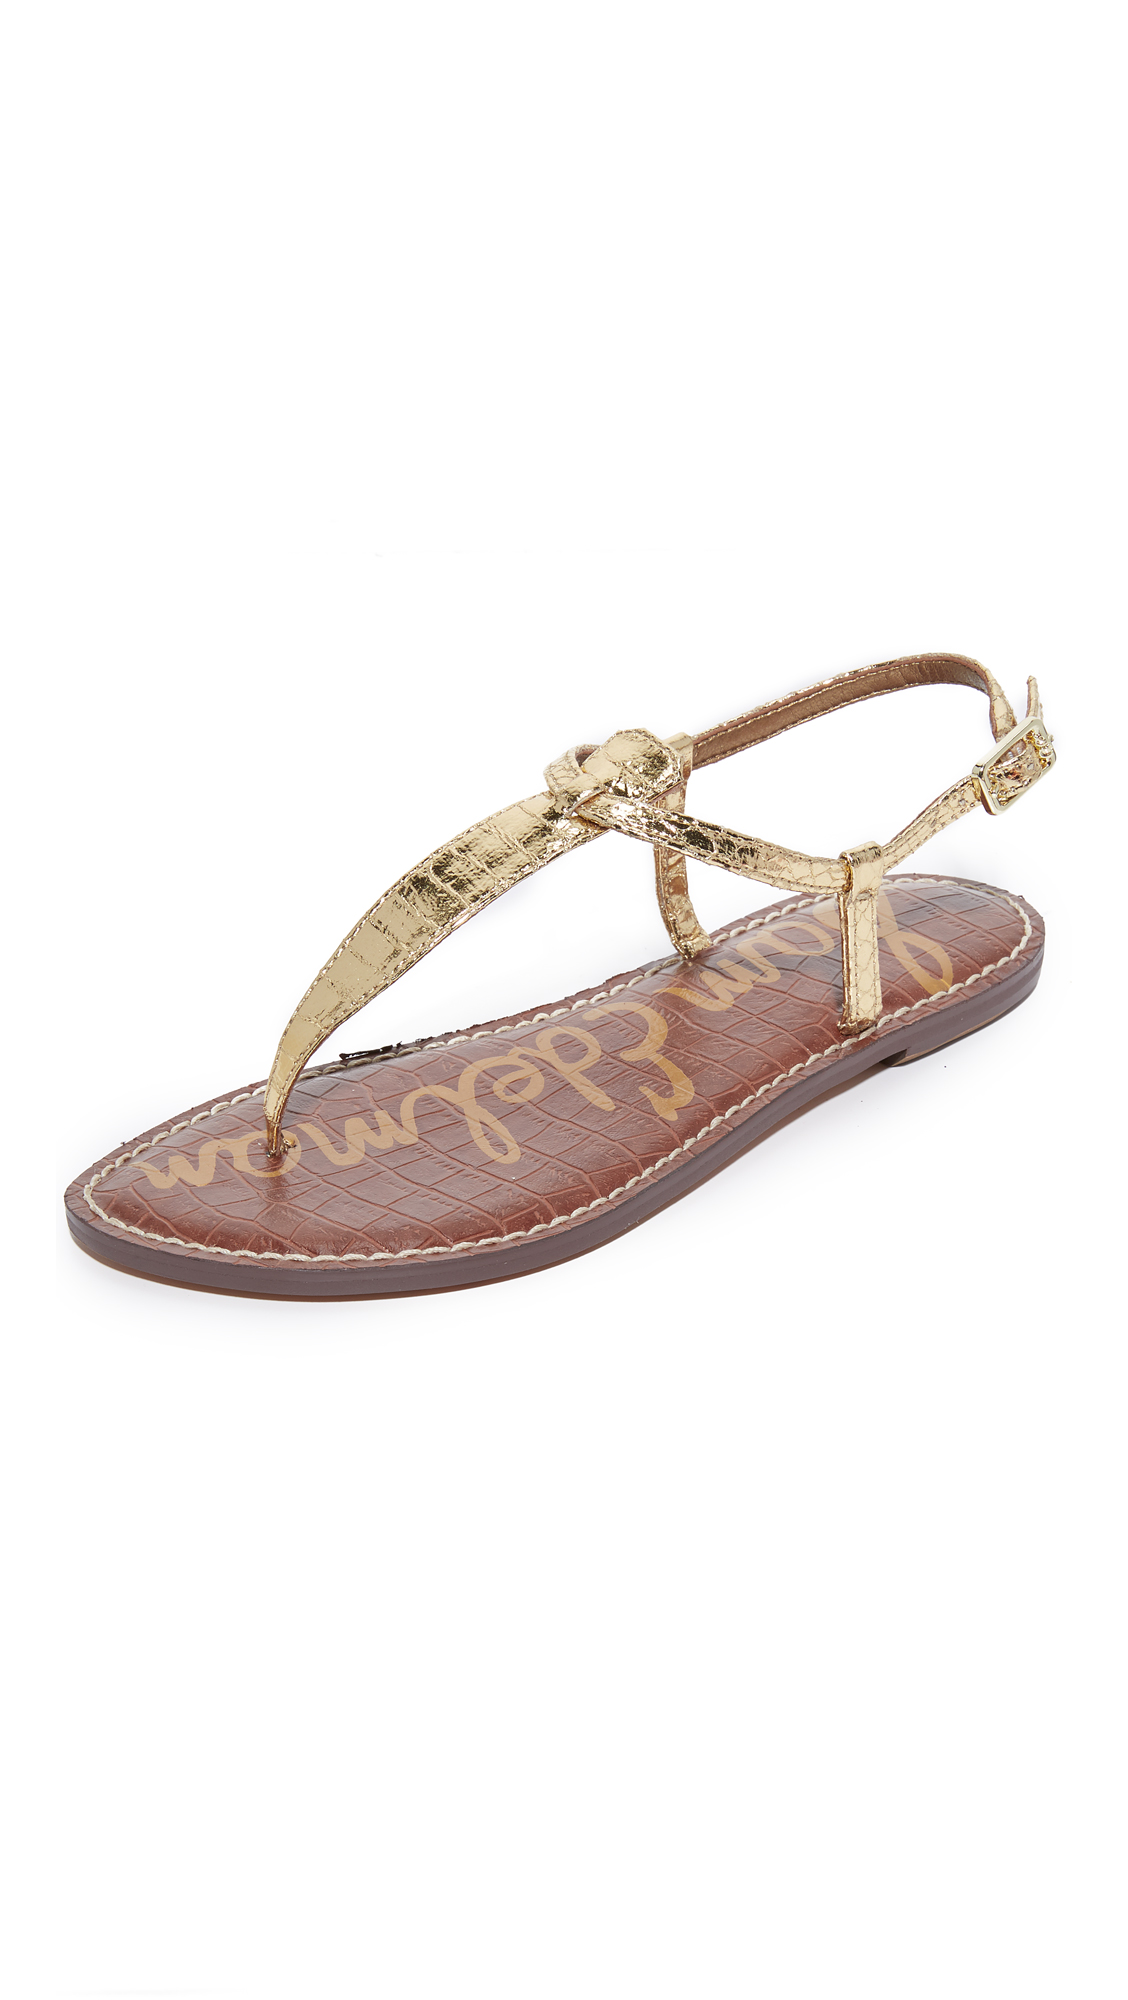 Sam Edelman Gigi Flat Sandals - Gold